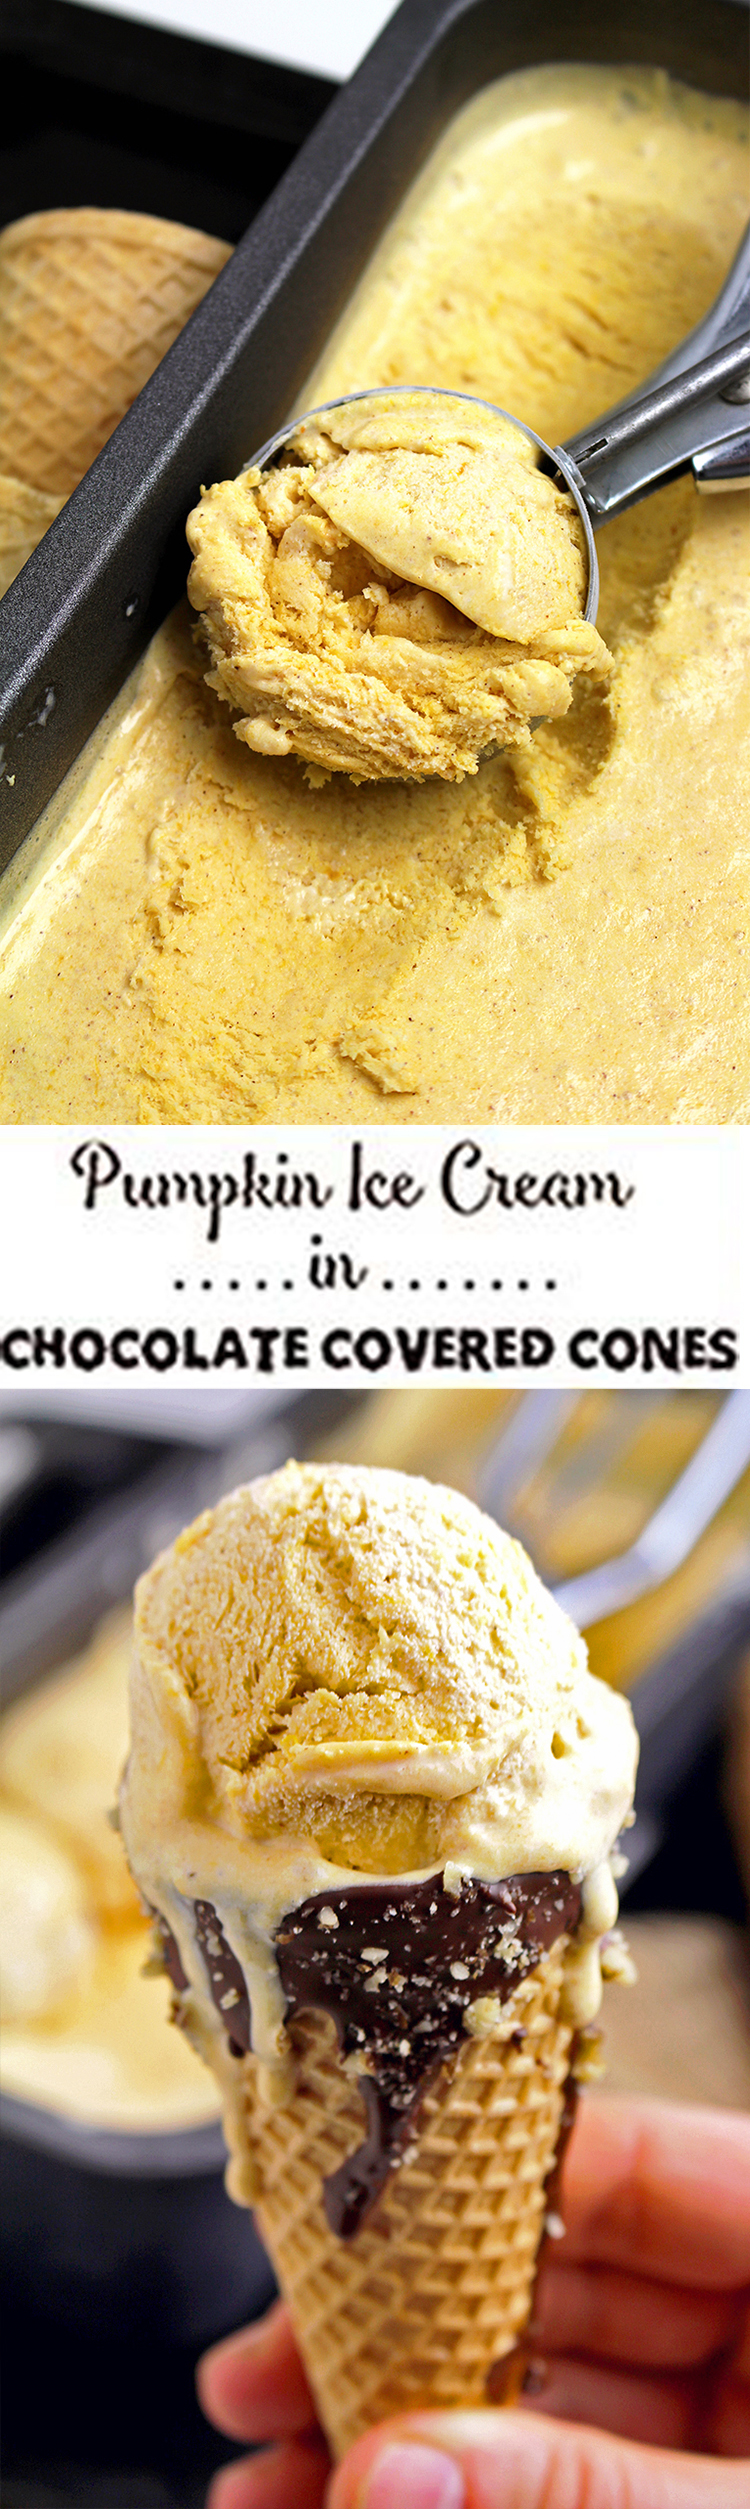 123 Pumpkin Ice Cream in Chocolate Covered Cones